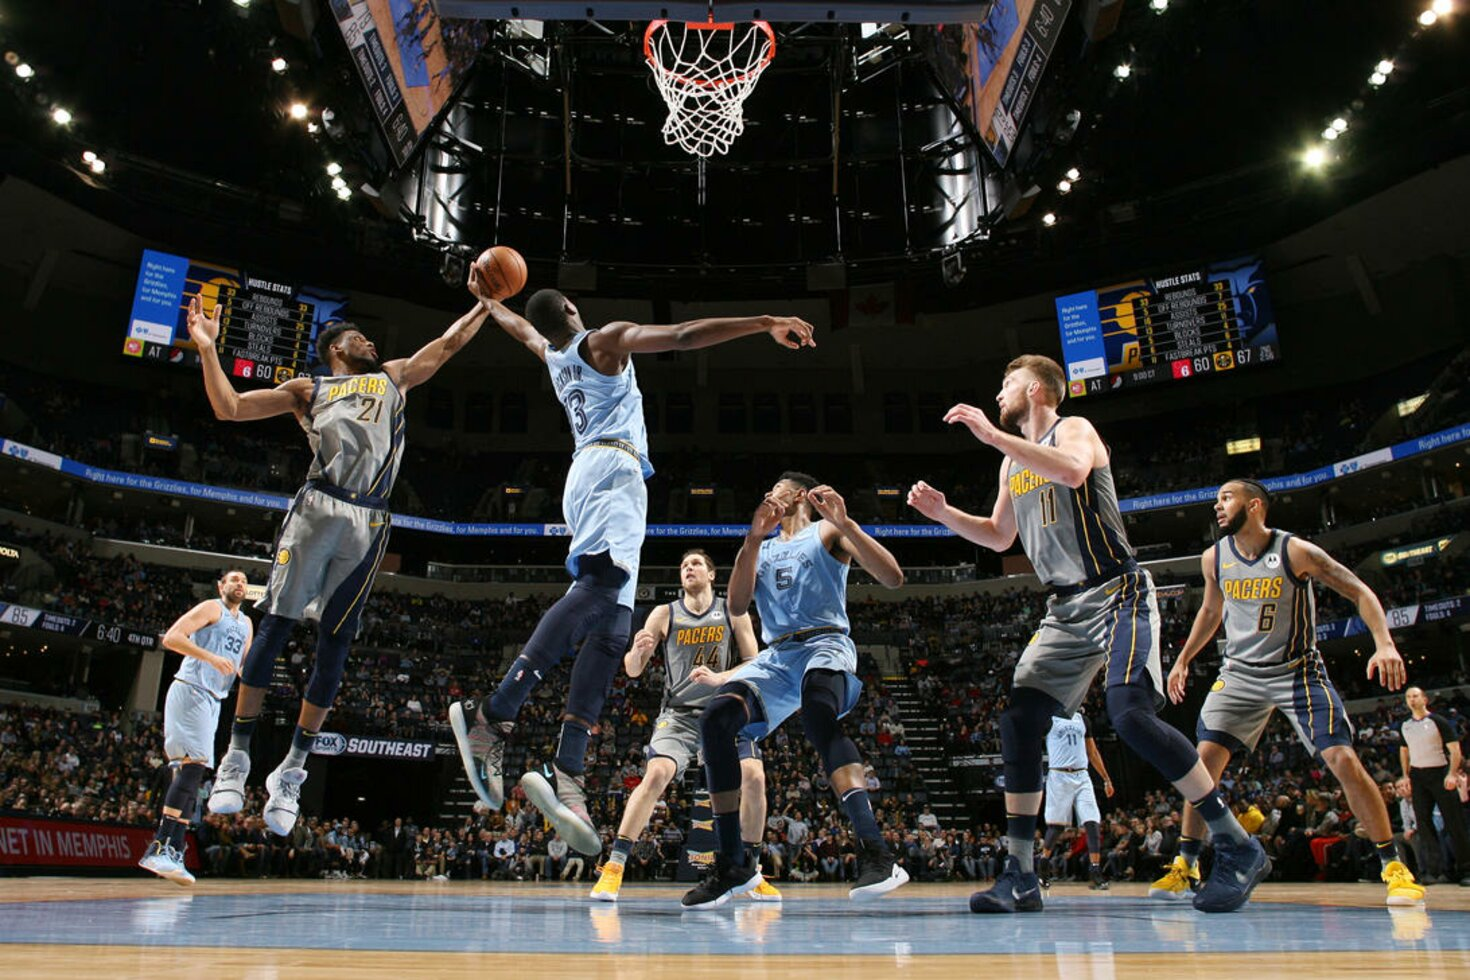 MEMPHIS, TN - JANUARY 26: Jaren Jackson Jr. #13 of the Memphis Grizzlies blocks the shot against Thaddeus Young #21 of the Indiana Pacers   on January 26, 2019 at FedExForum in Memphis, Tennessee.